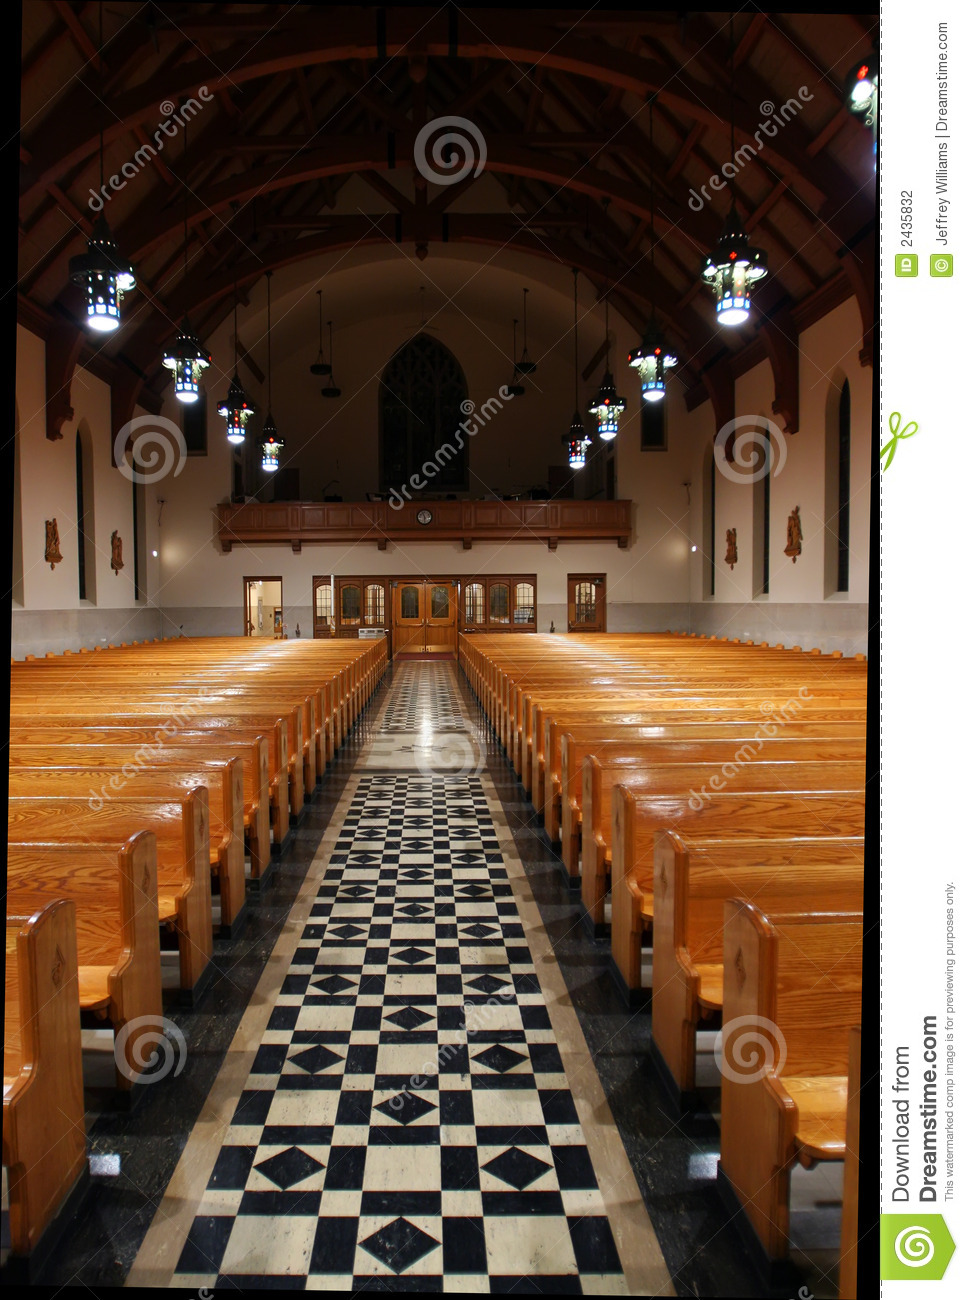 Church Aisle Stock Photography Image 2435832